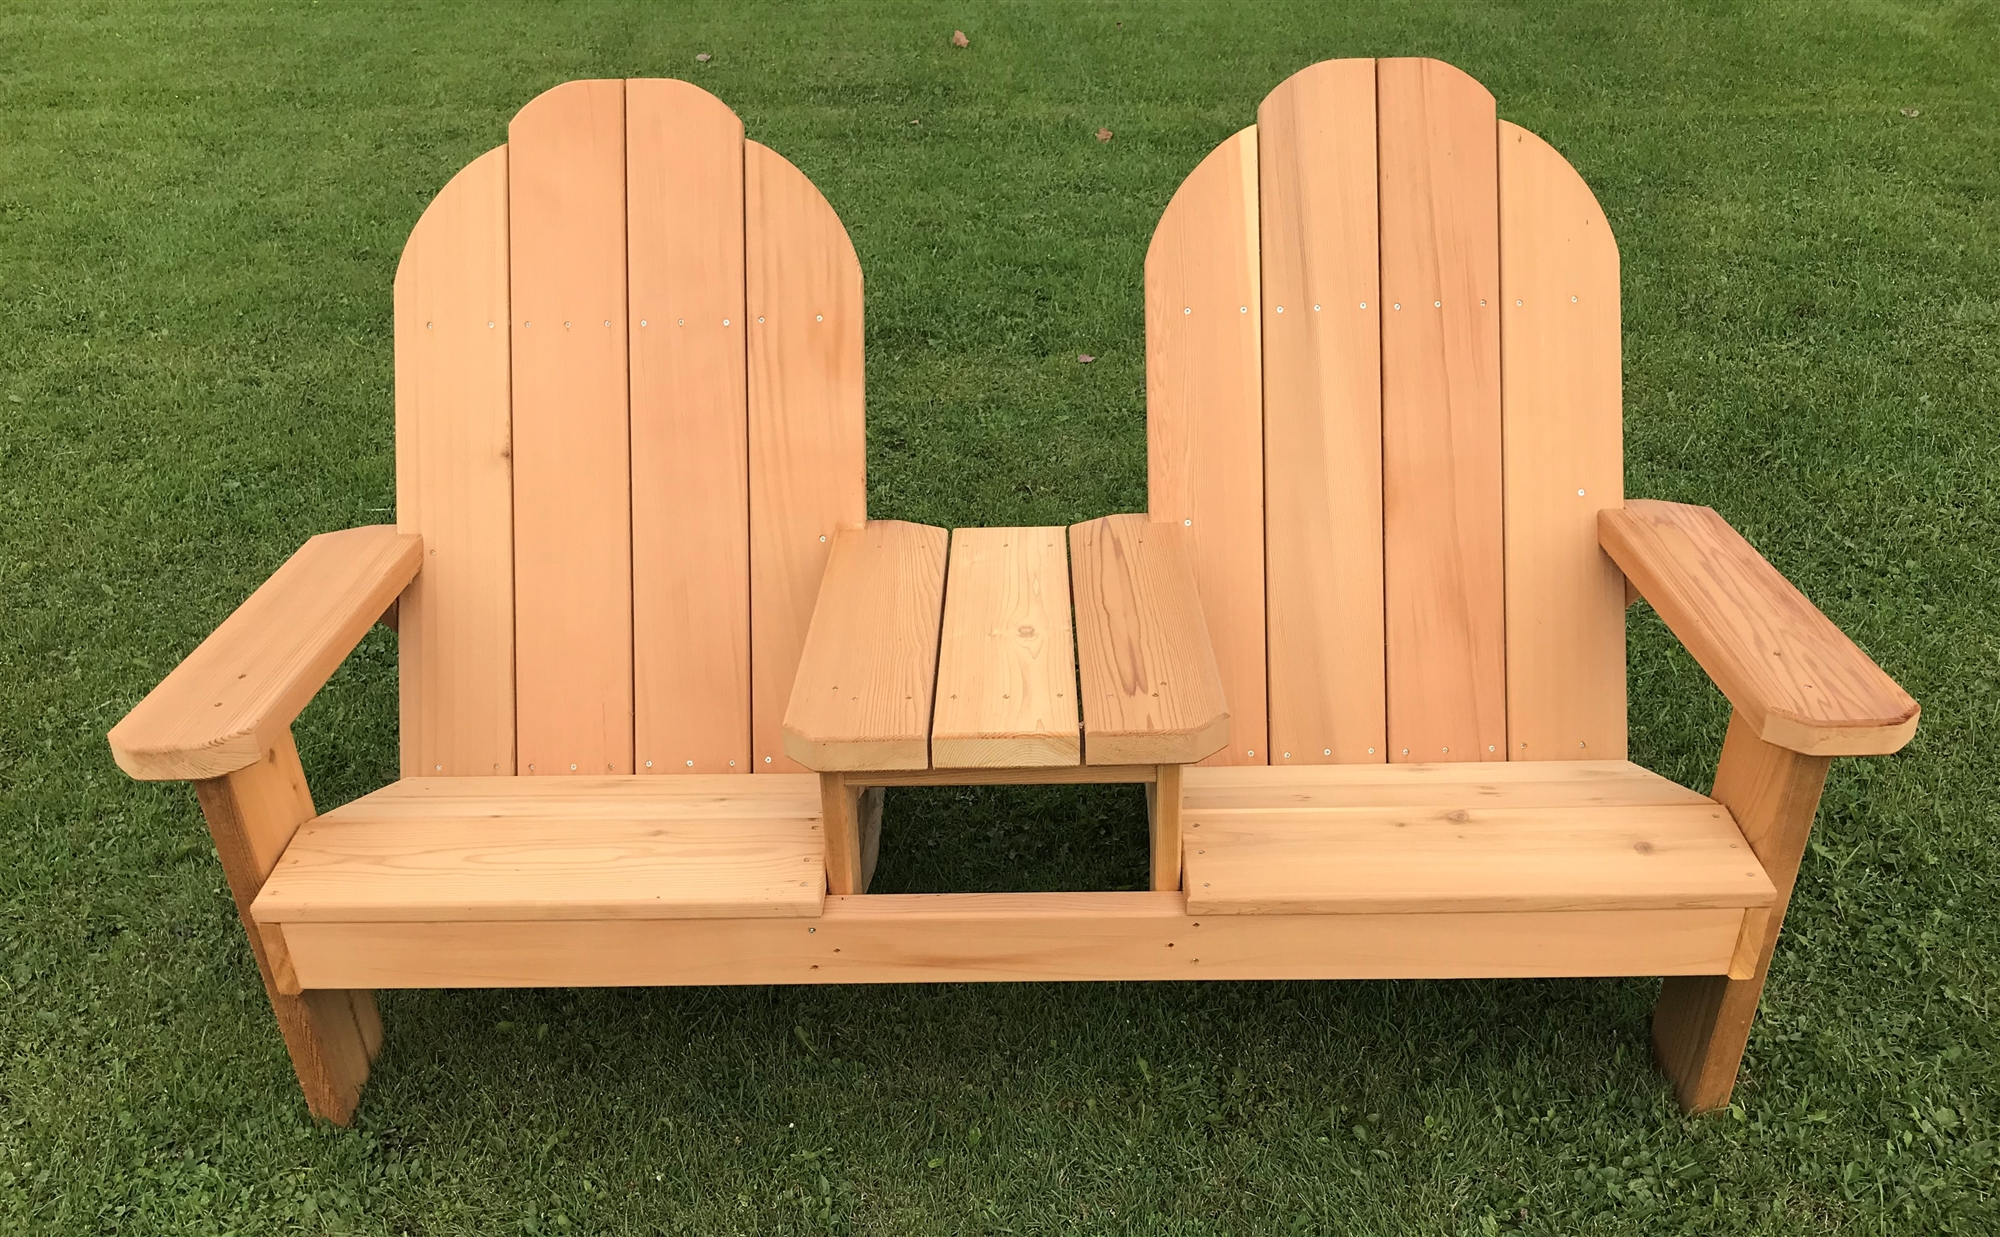 Two Person Slanted Seating Tete E Tete Adirondack Bench